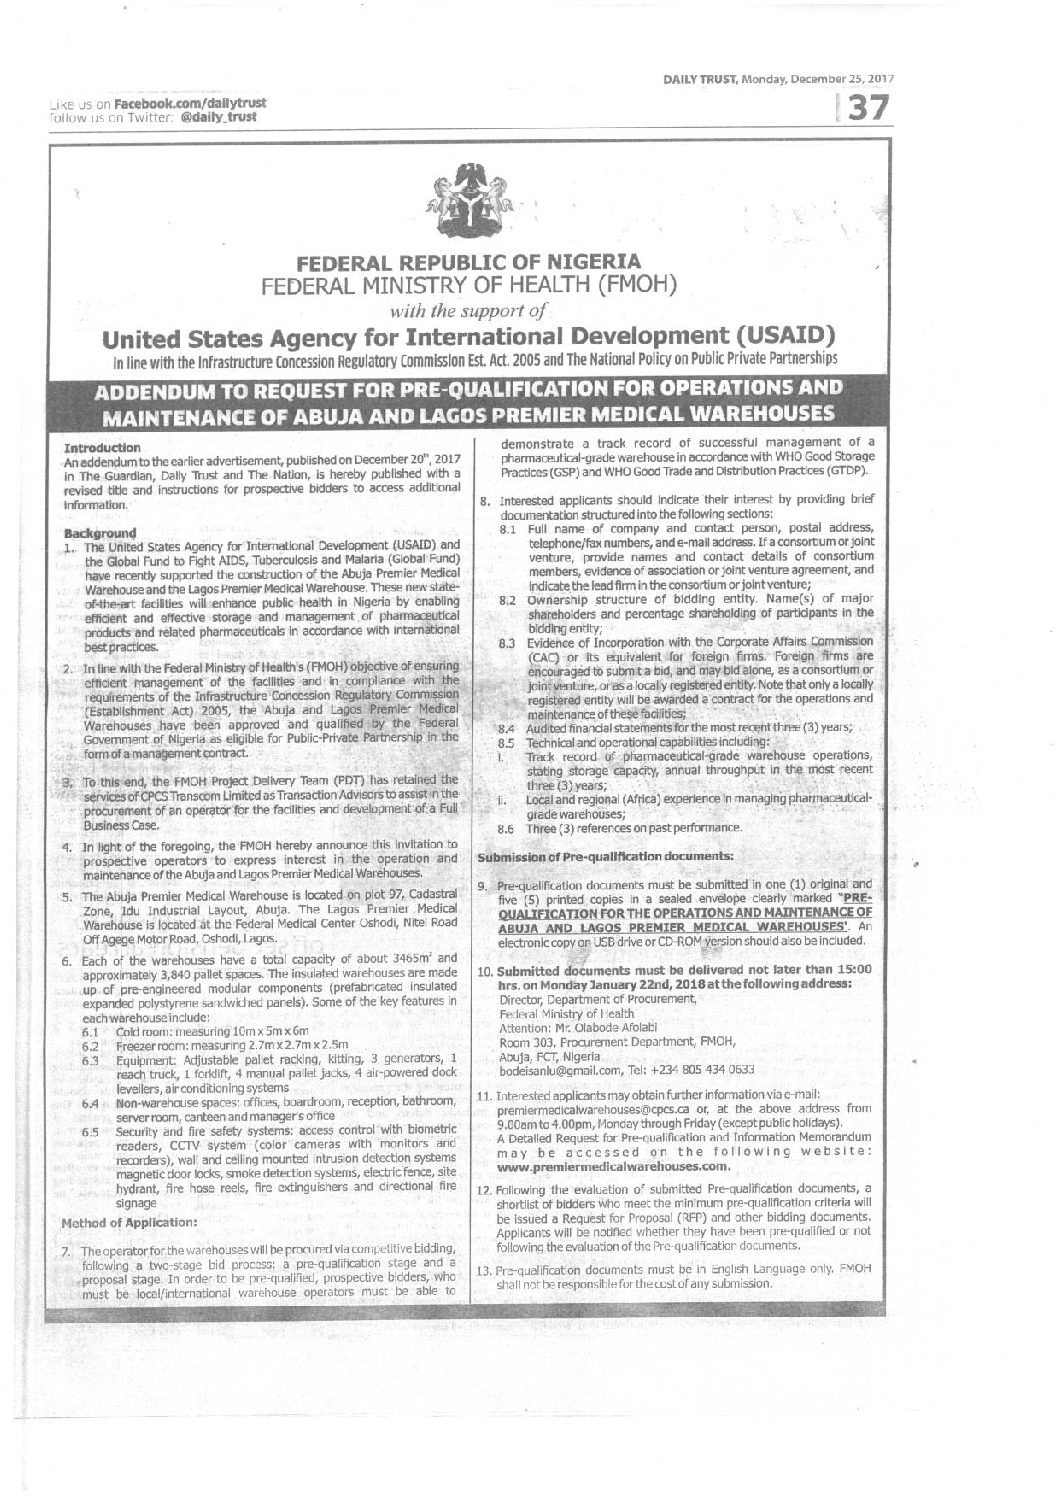 ADVERTORIAL: Addendum to request for pre-qualification for